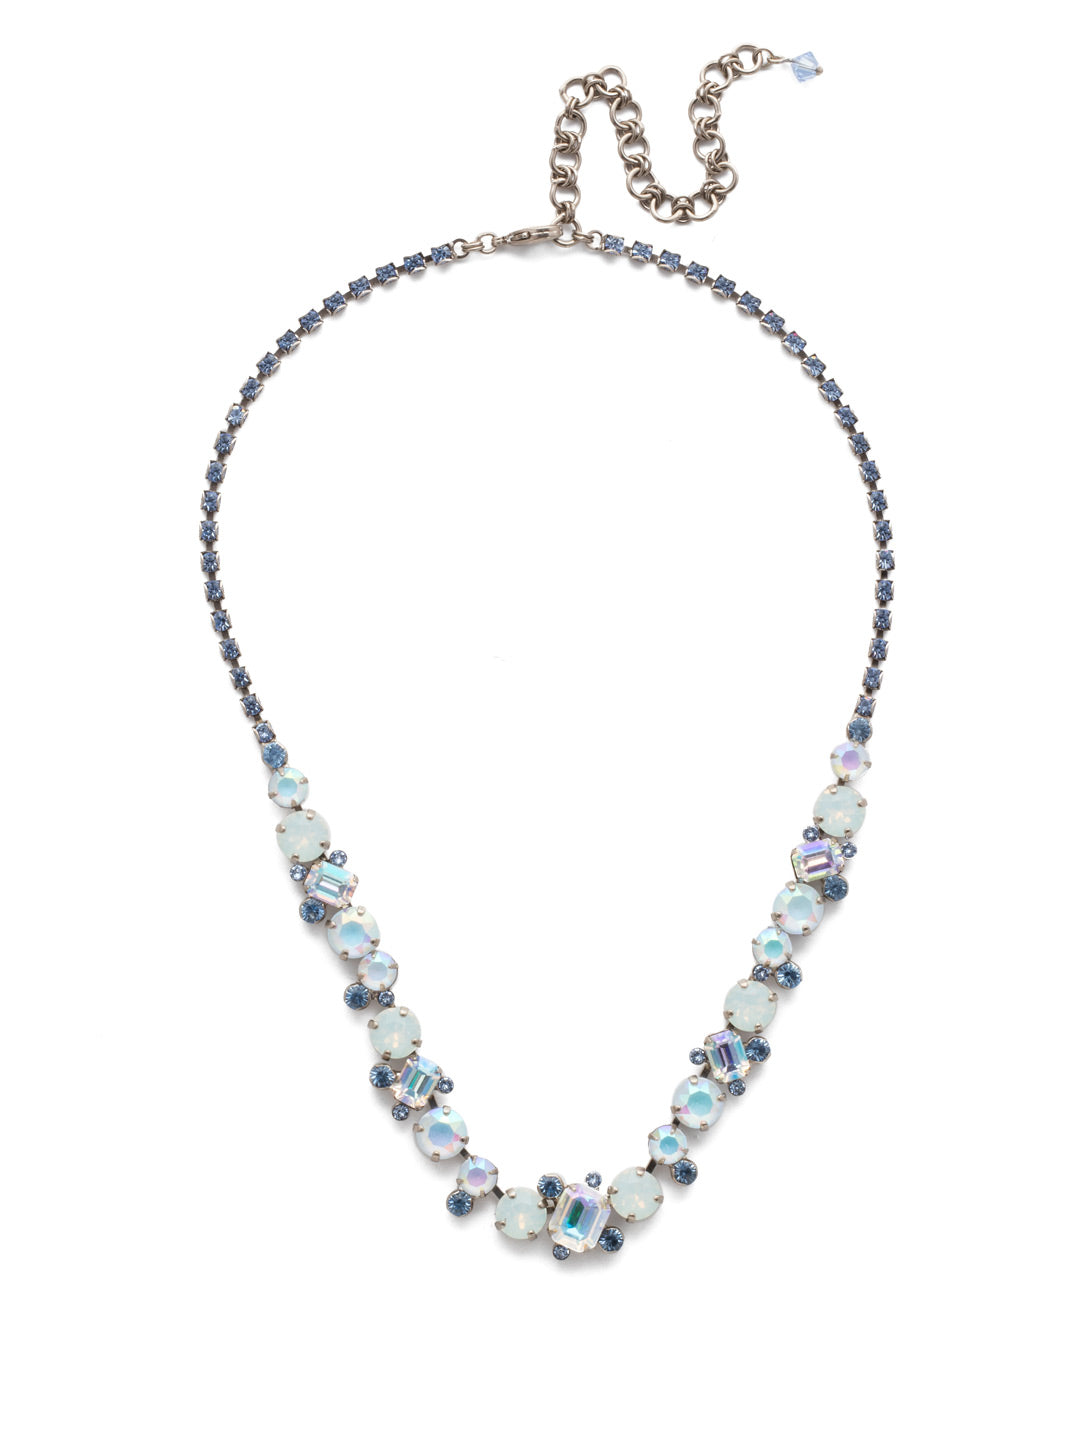 Sophisticated Tennis Necklace - NDK17ASGLC